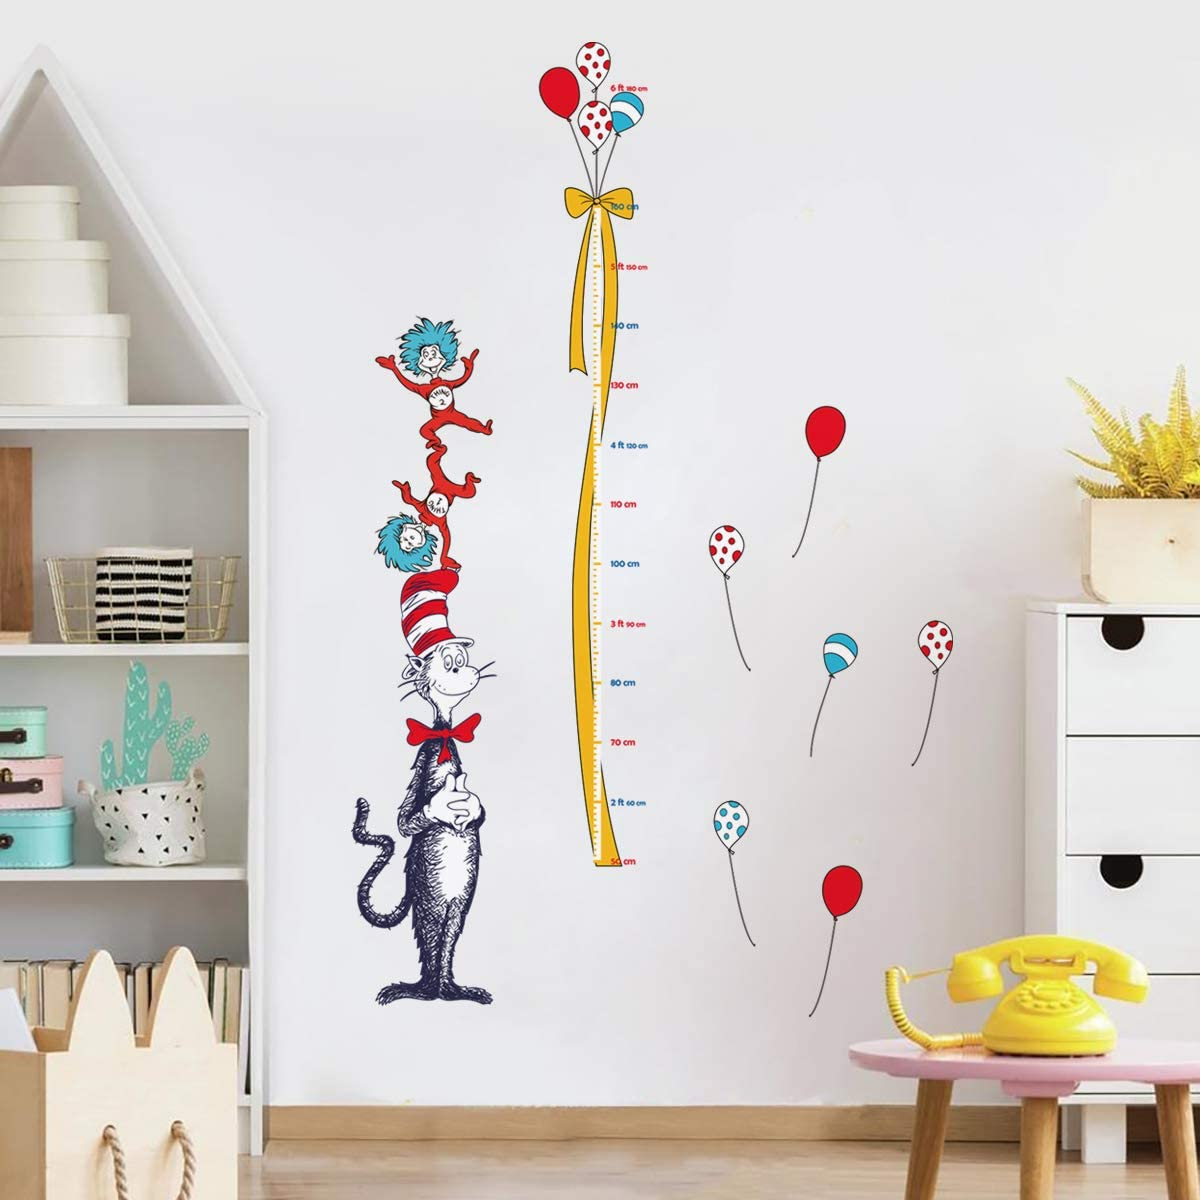 decalmile Dr Seuss Height Chart Wall Decals Kids Measure Growth Wall Stickers Baby Nursery Classroom Childrens Bedroom Wall Decor